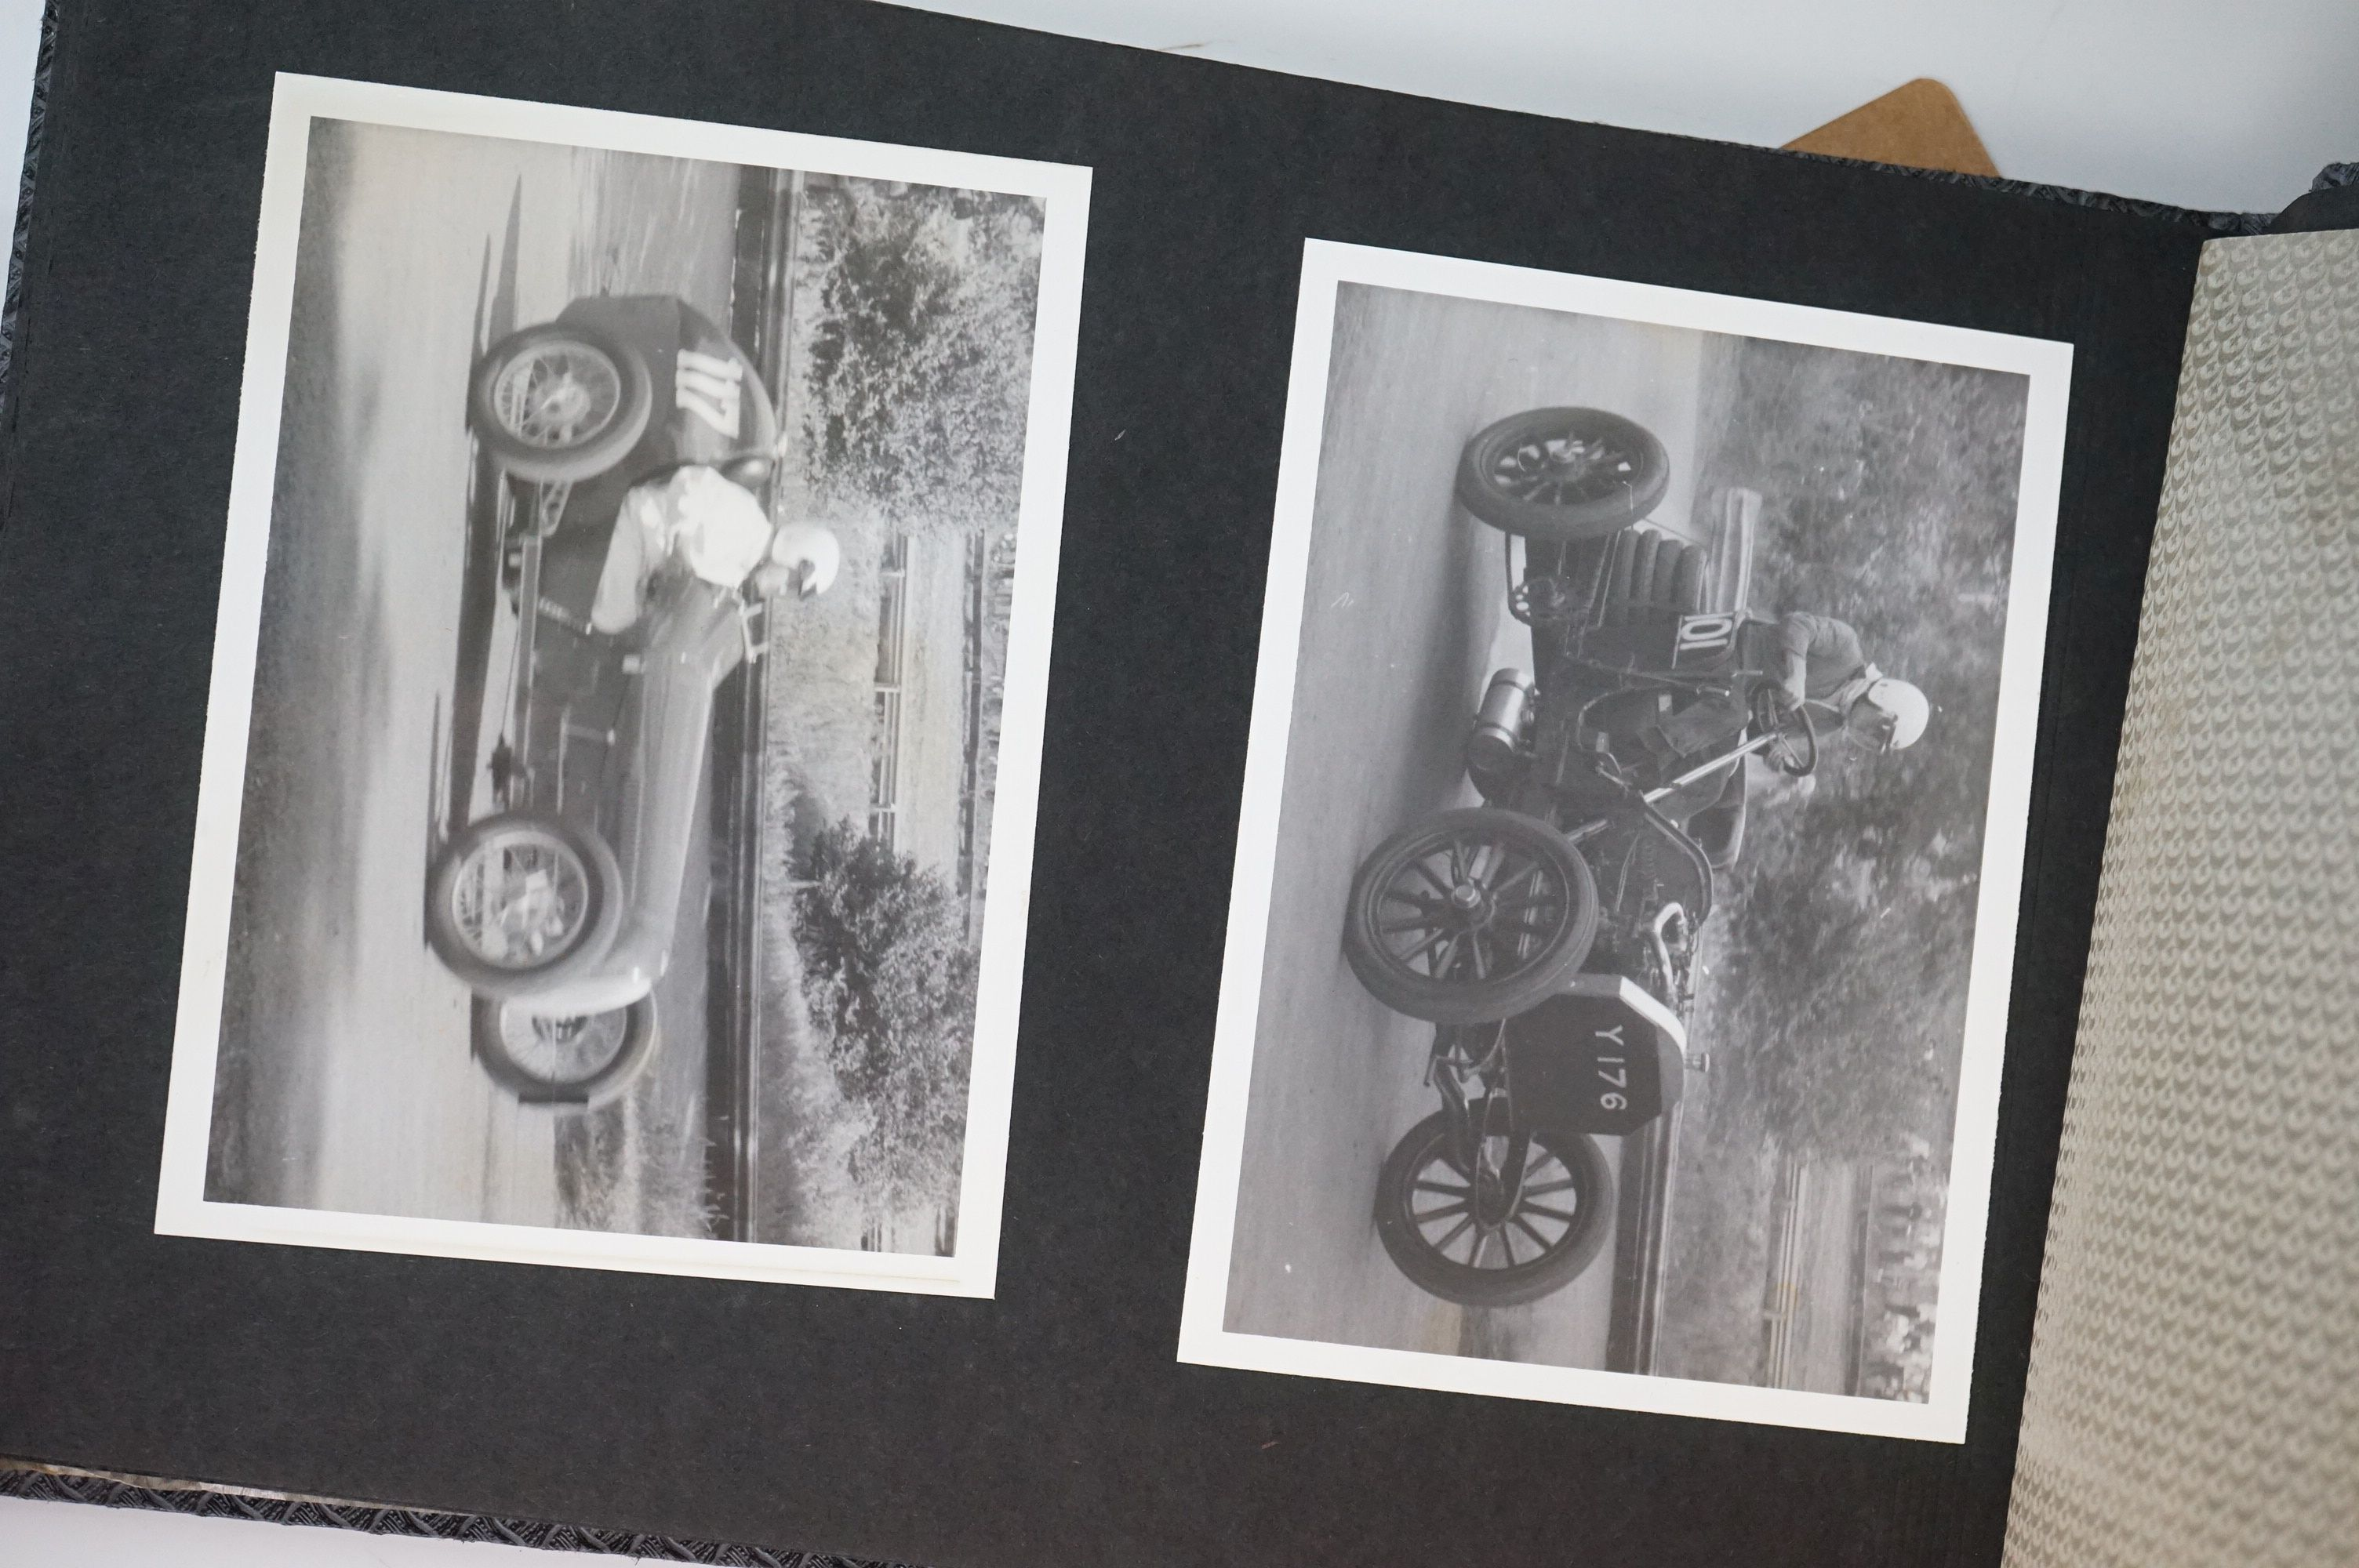 A vintage photograph album with vintage black and white photos of motor racing cars. - Image 4 of 5